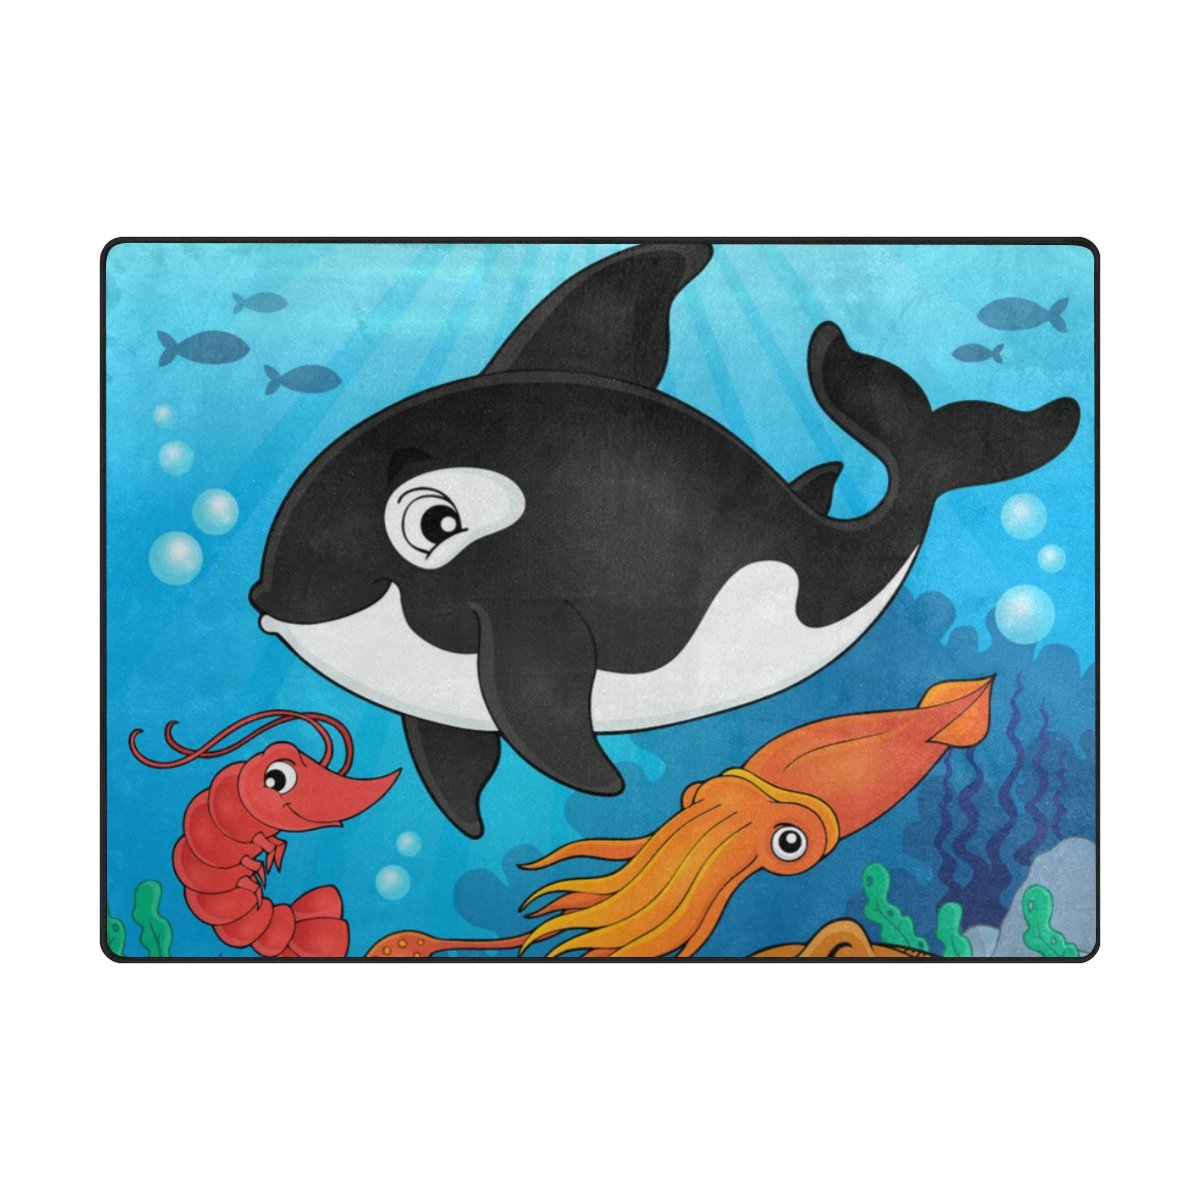 Vantaso Soft Foam Area Rugs Ocean Shark Octopus Non Slip Play Mats for Kids Boys Girls Playing Room Living Room 80x58 inch